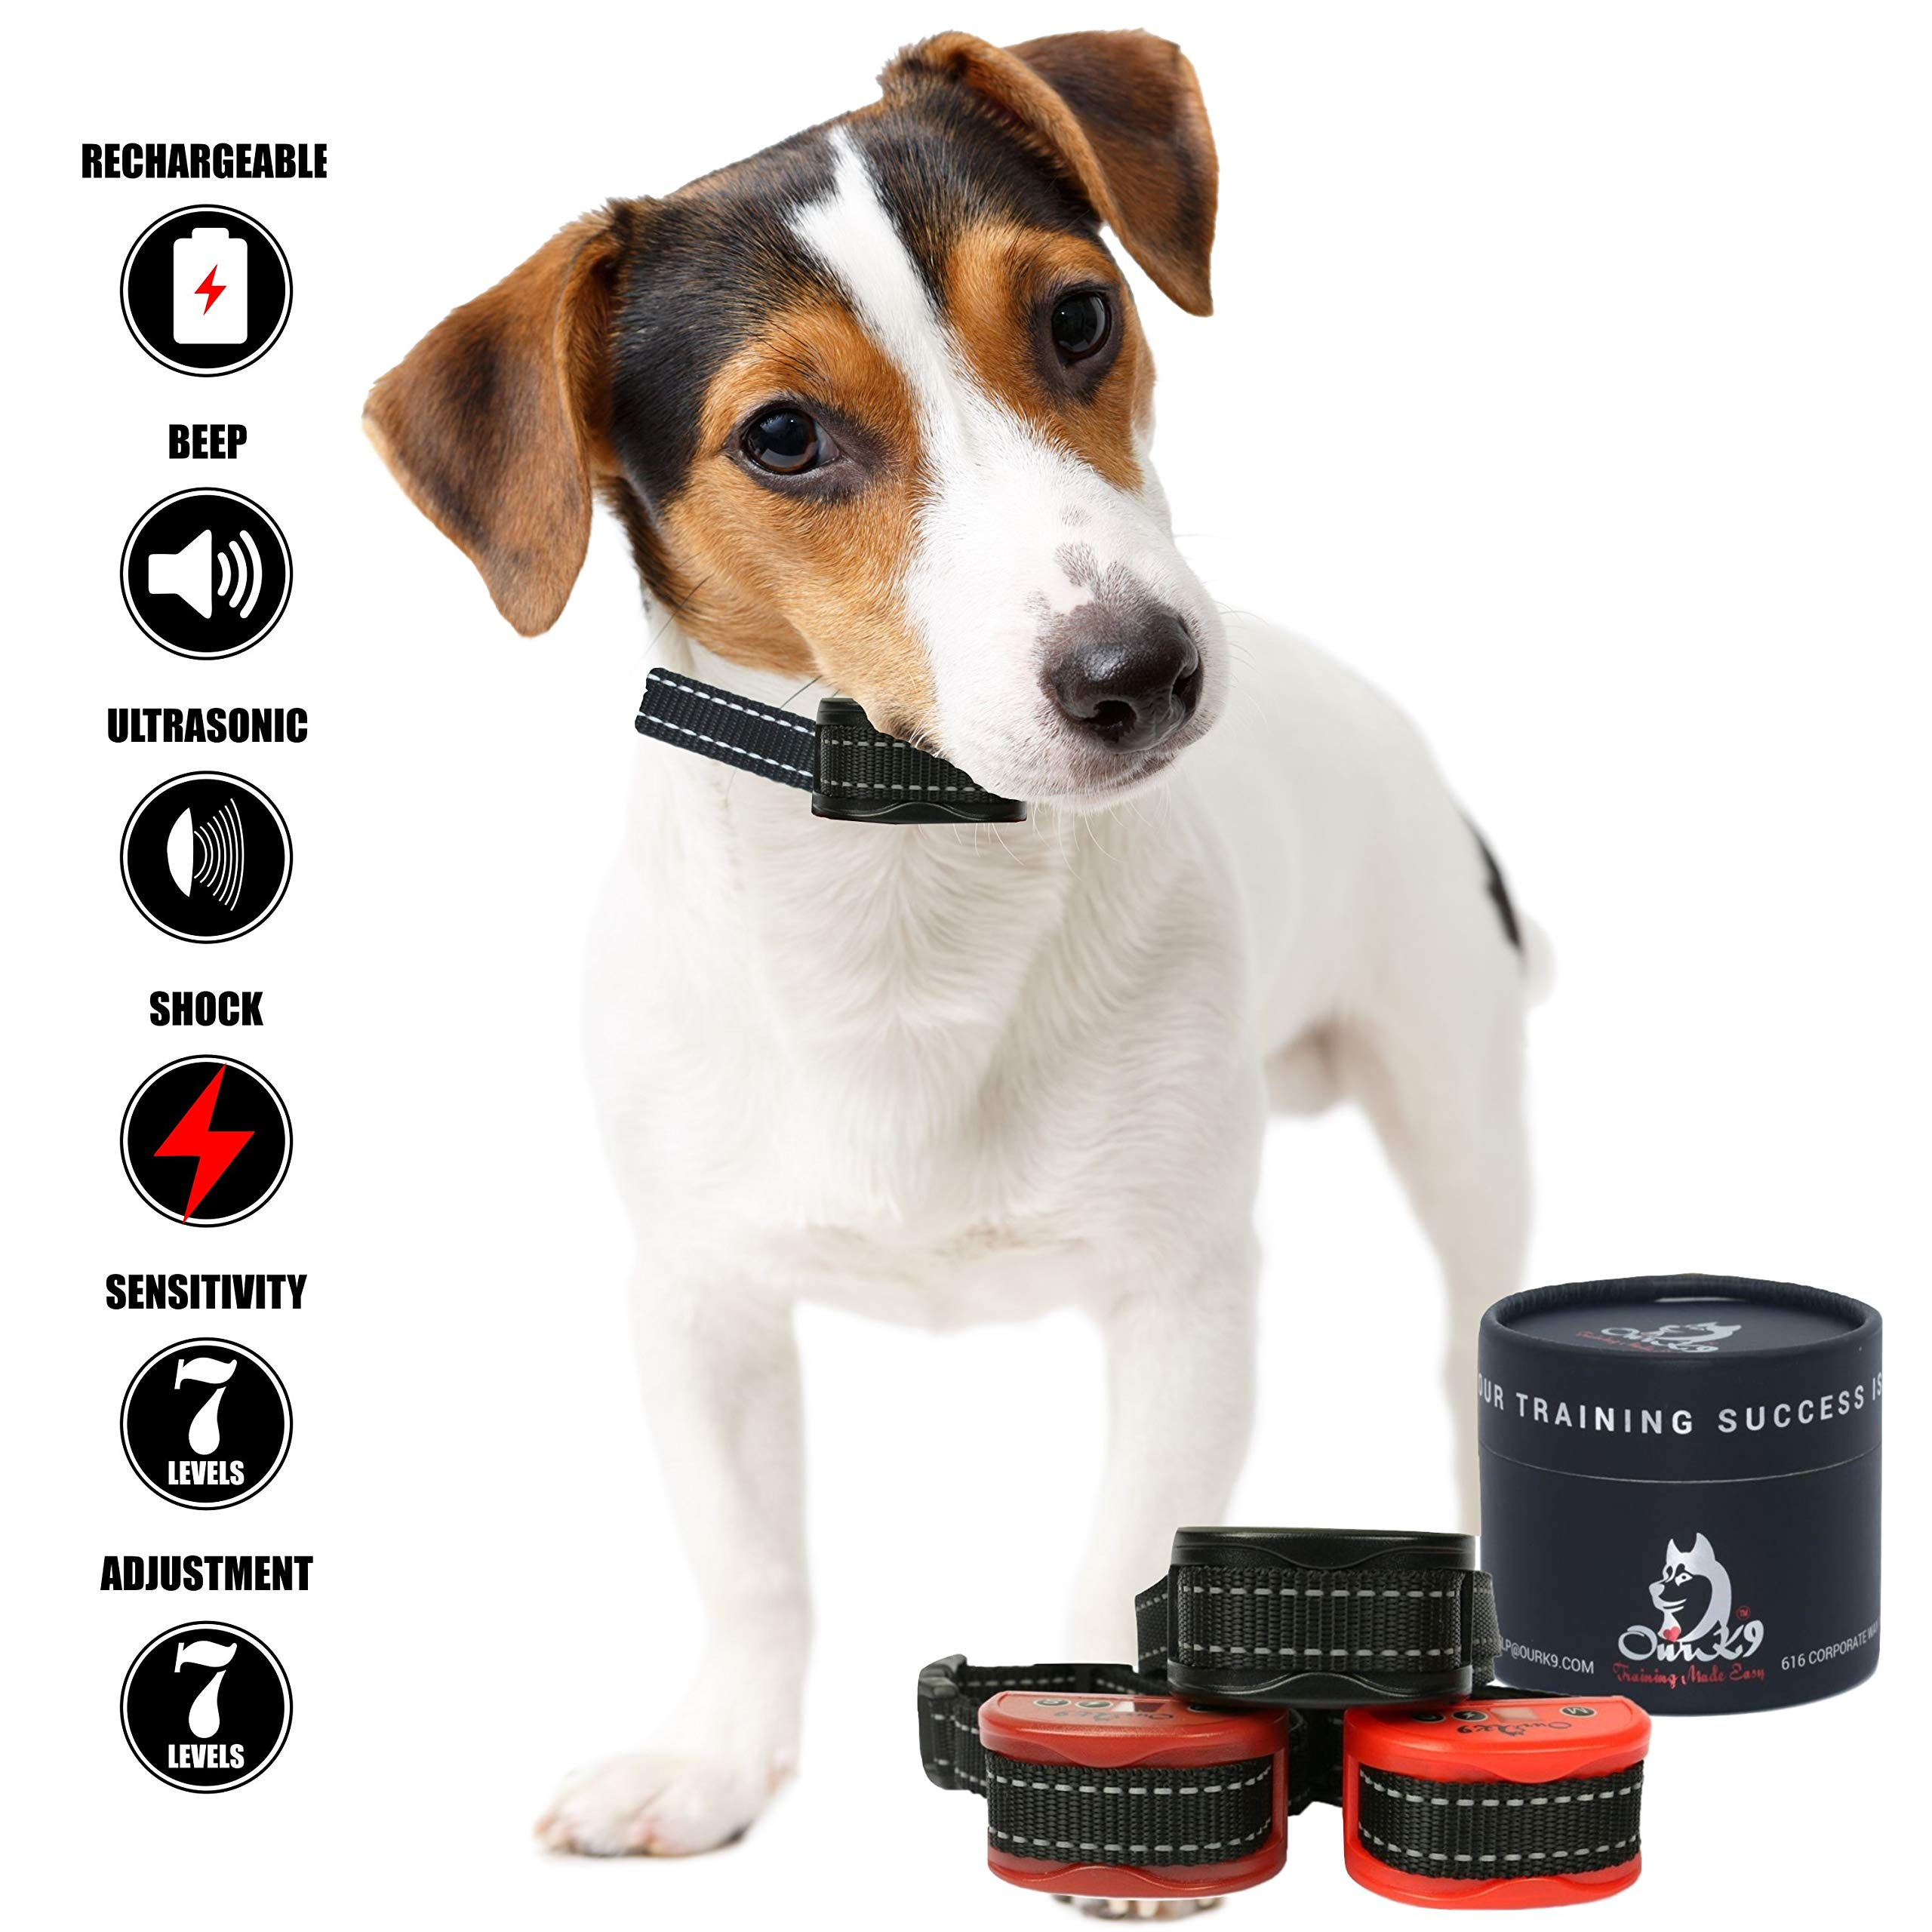 Our K9 Training Made Easy Shock Collar  for  Small Dogs -  Adjustable Shock,  Pain Free  Option Available by Our K9 Training Made Easy